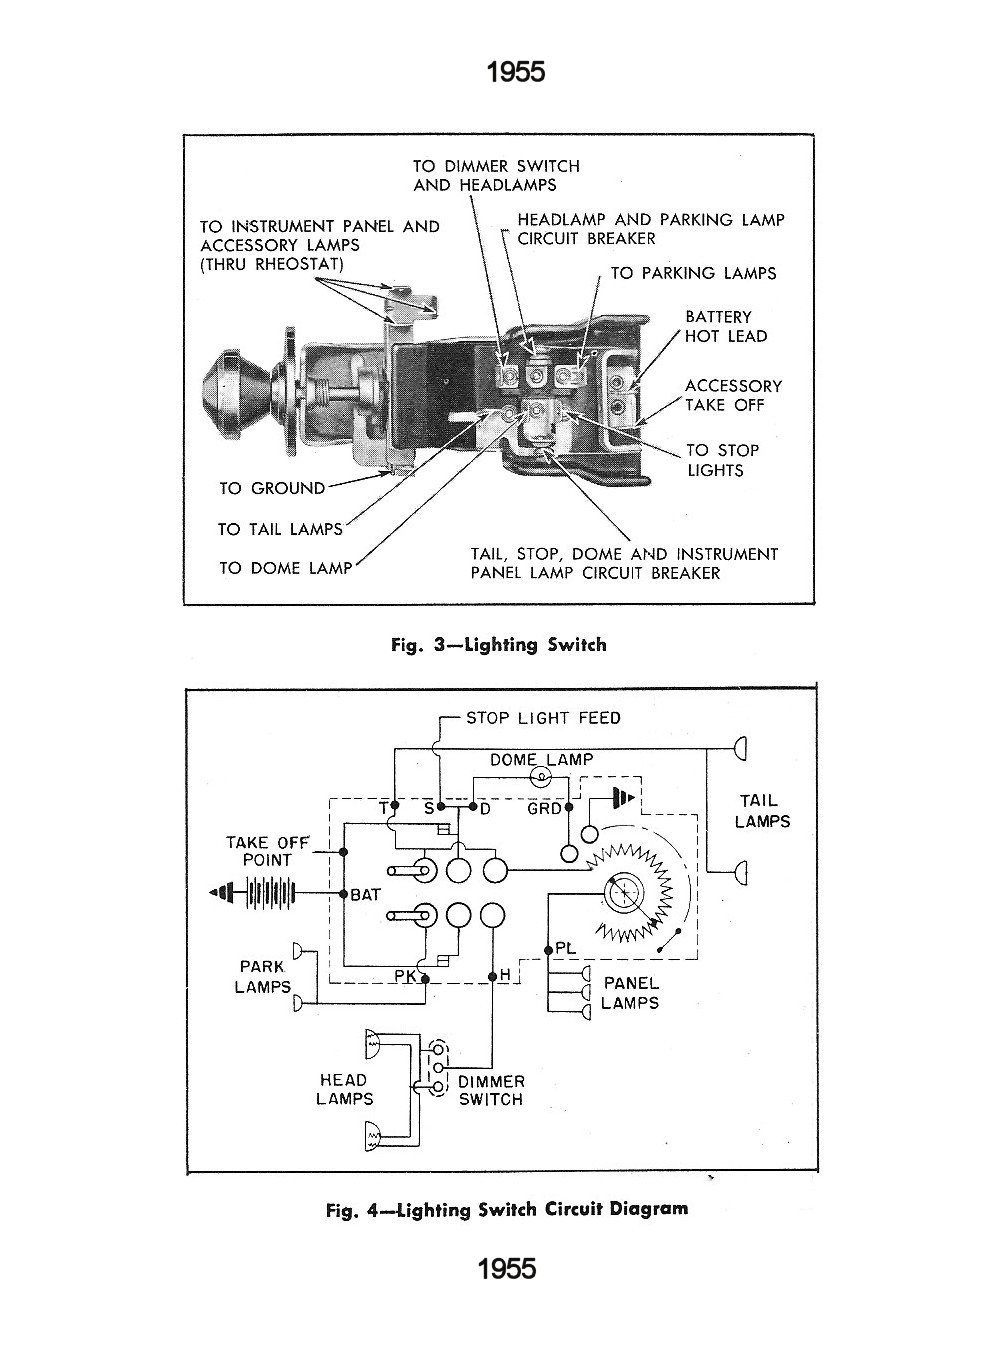 55csm1204a 1955 chevy wiring diagram 1955 pontiac wiring diagram \u2022 free chevrolet headlight switch wiring diagram at soozxer.org